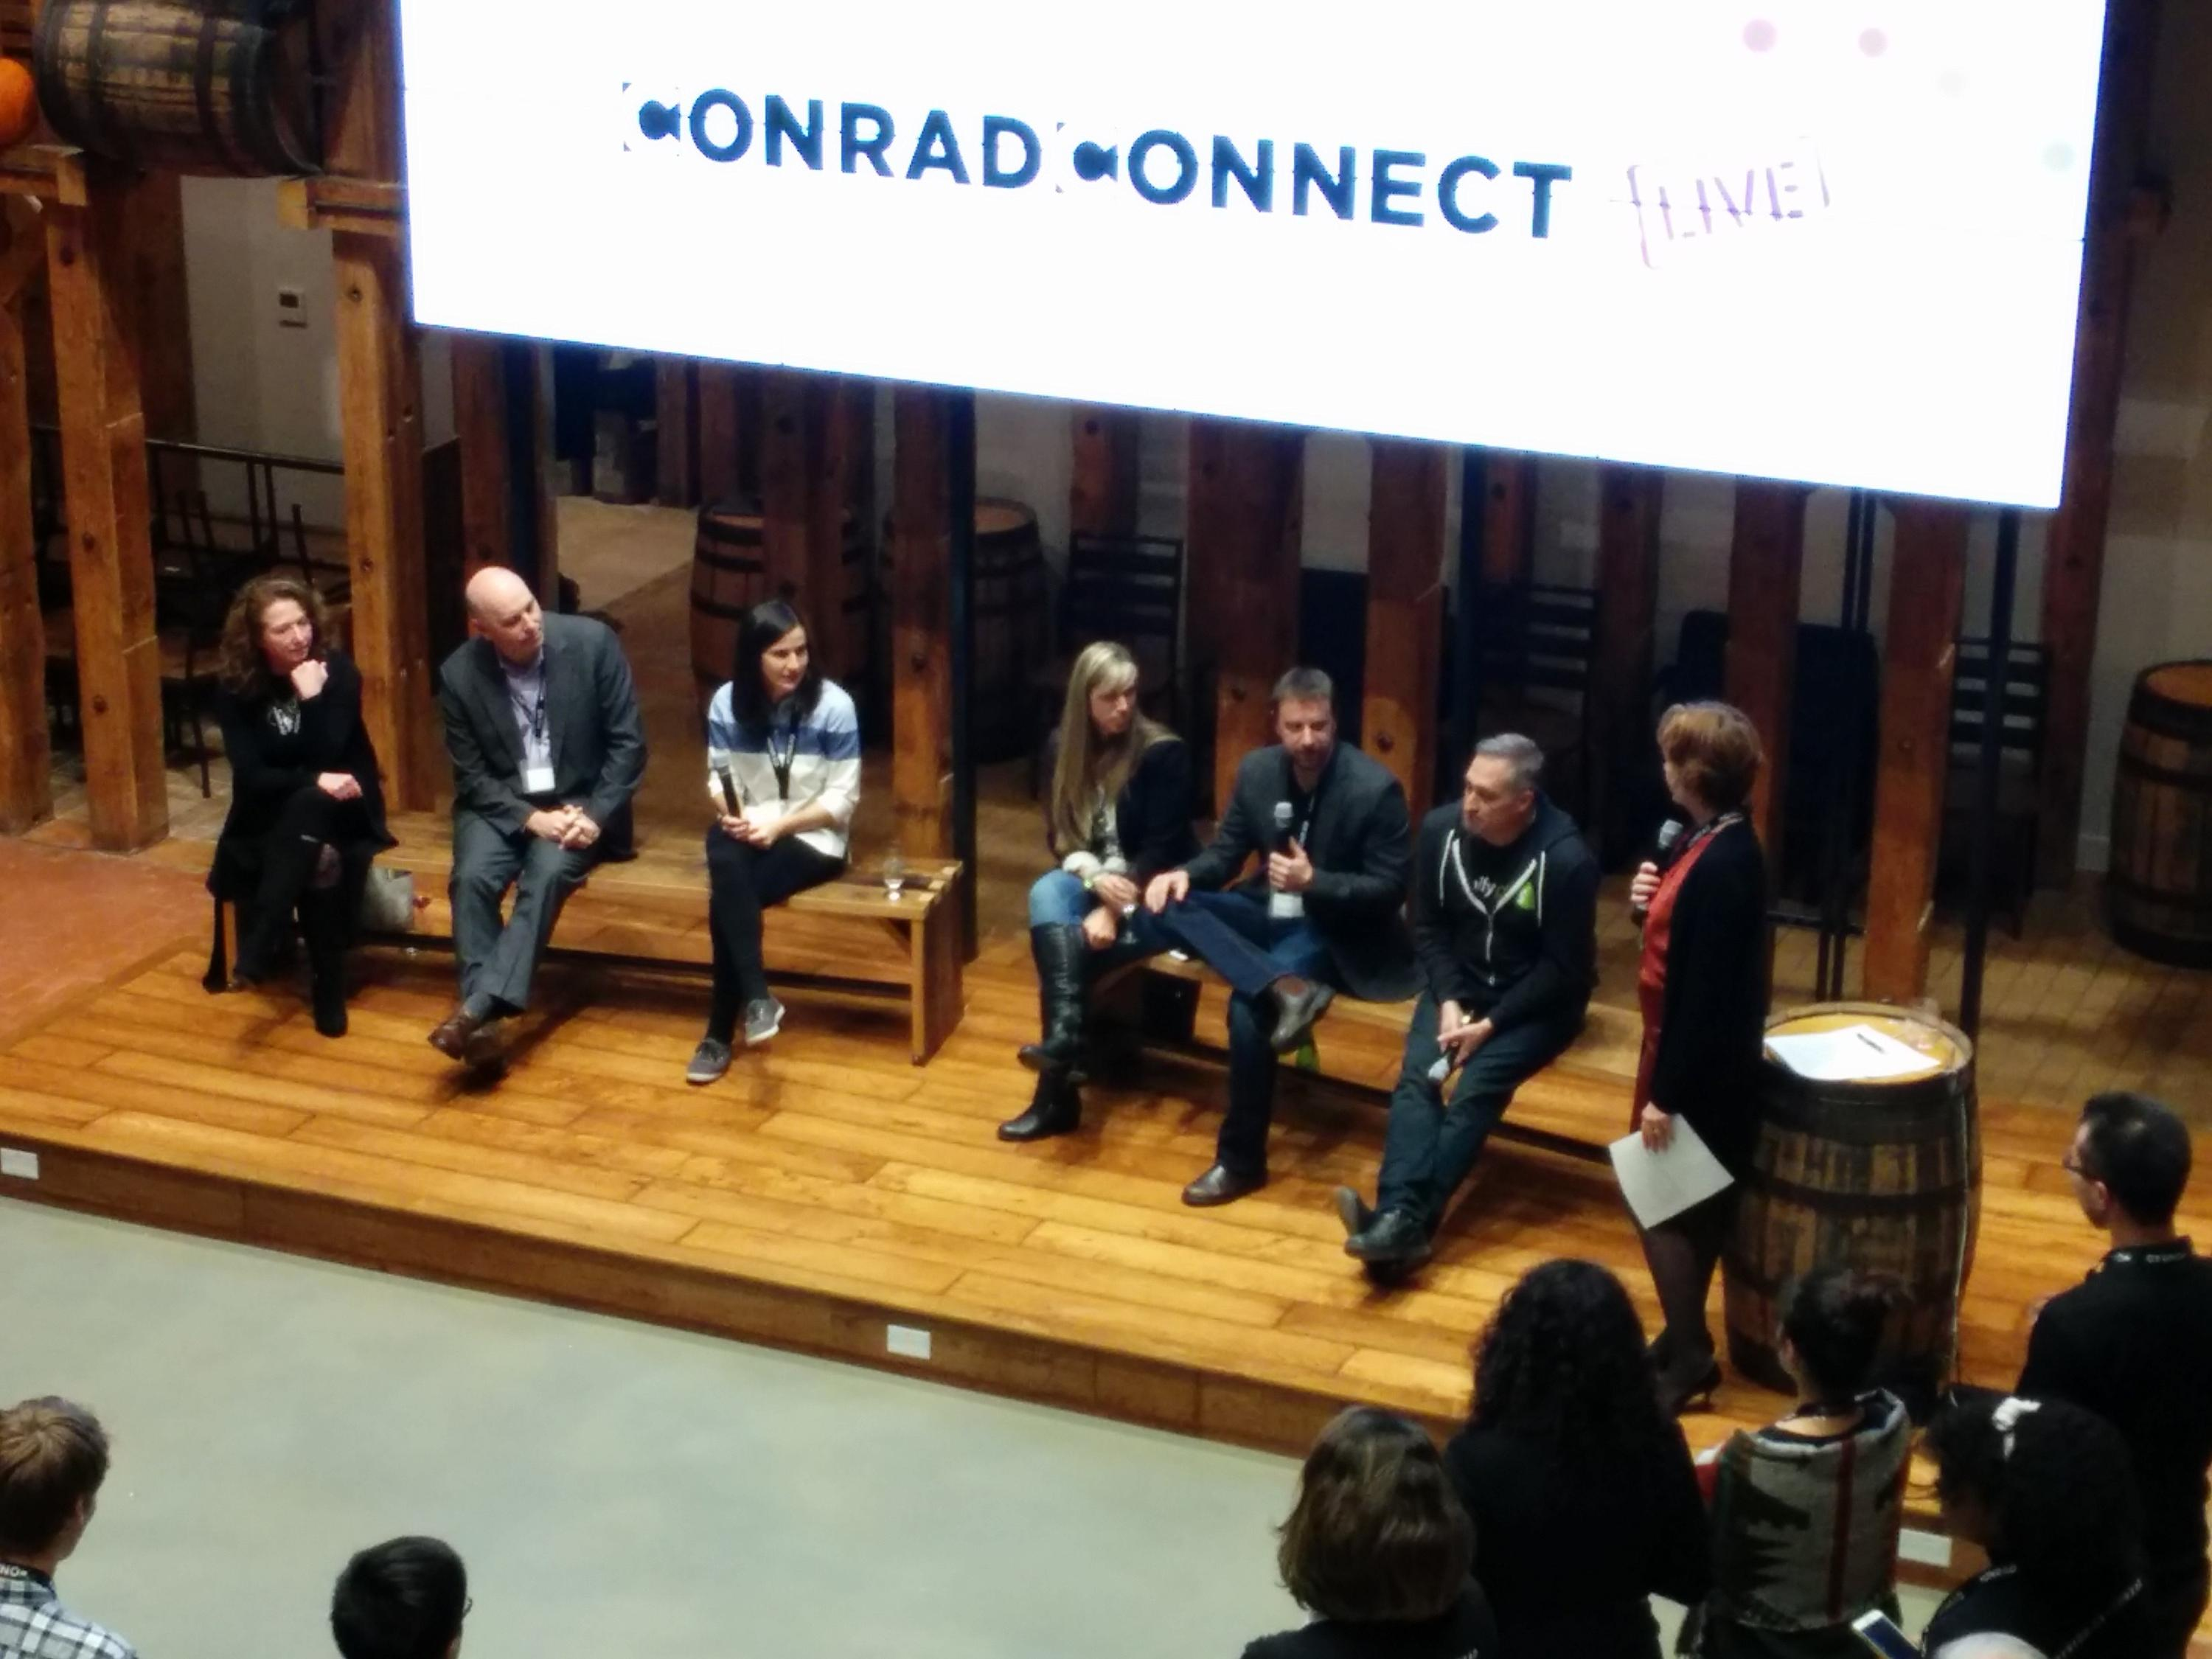 ConradConnect Live at Shopify